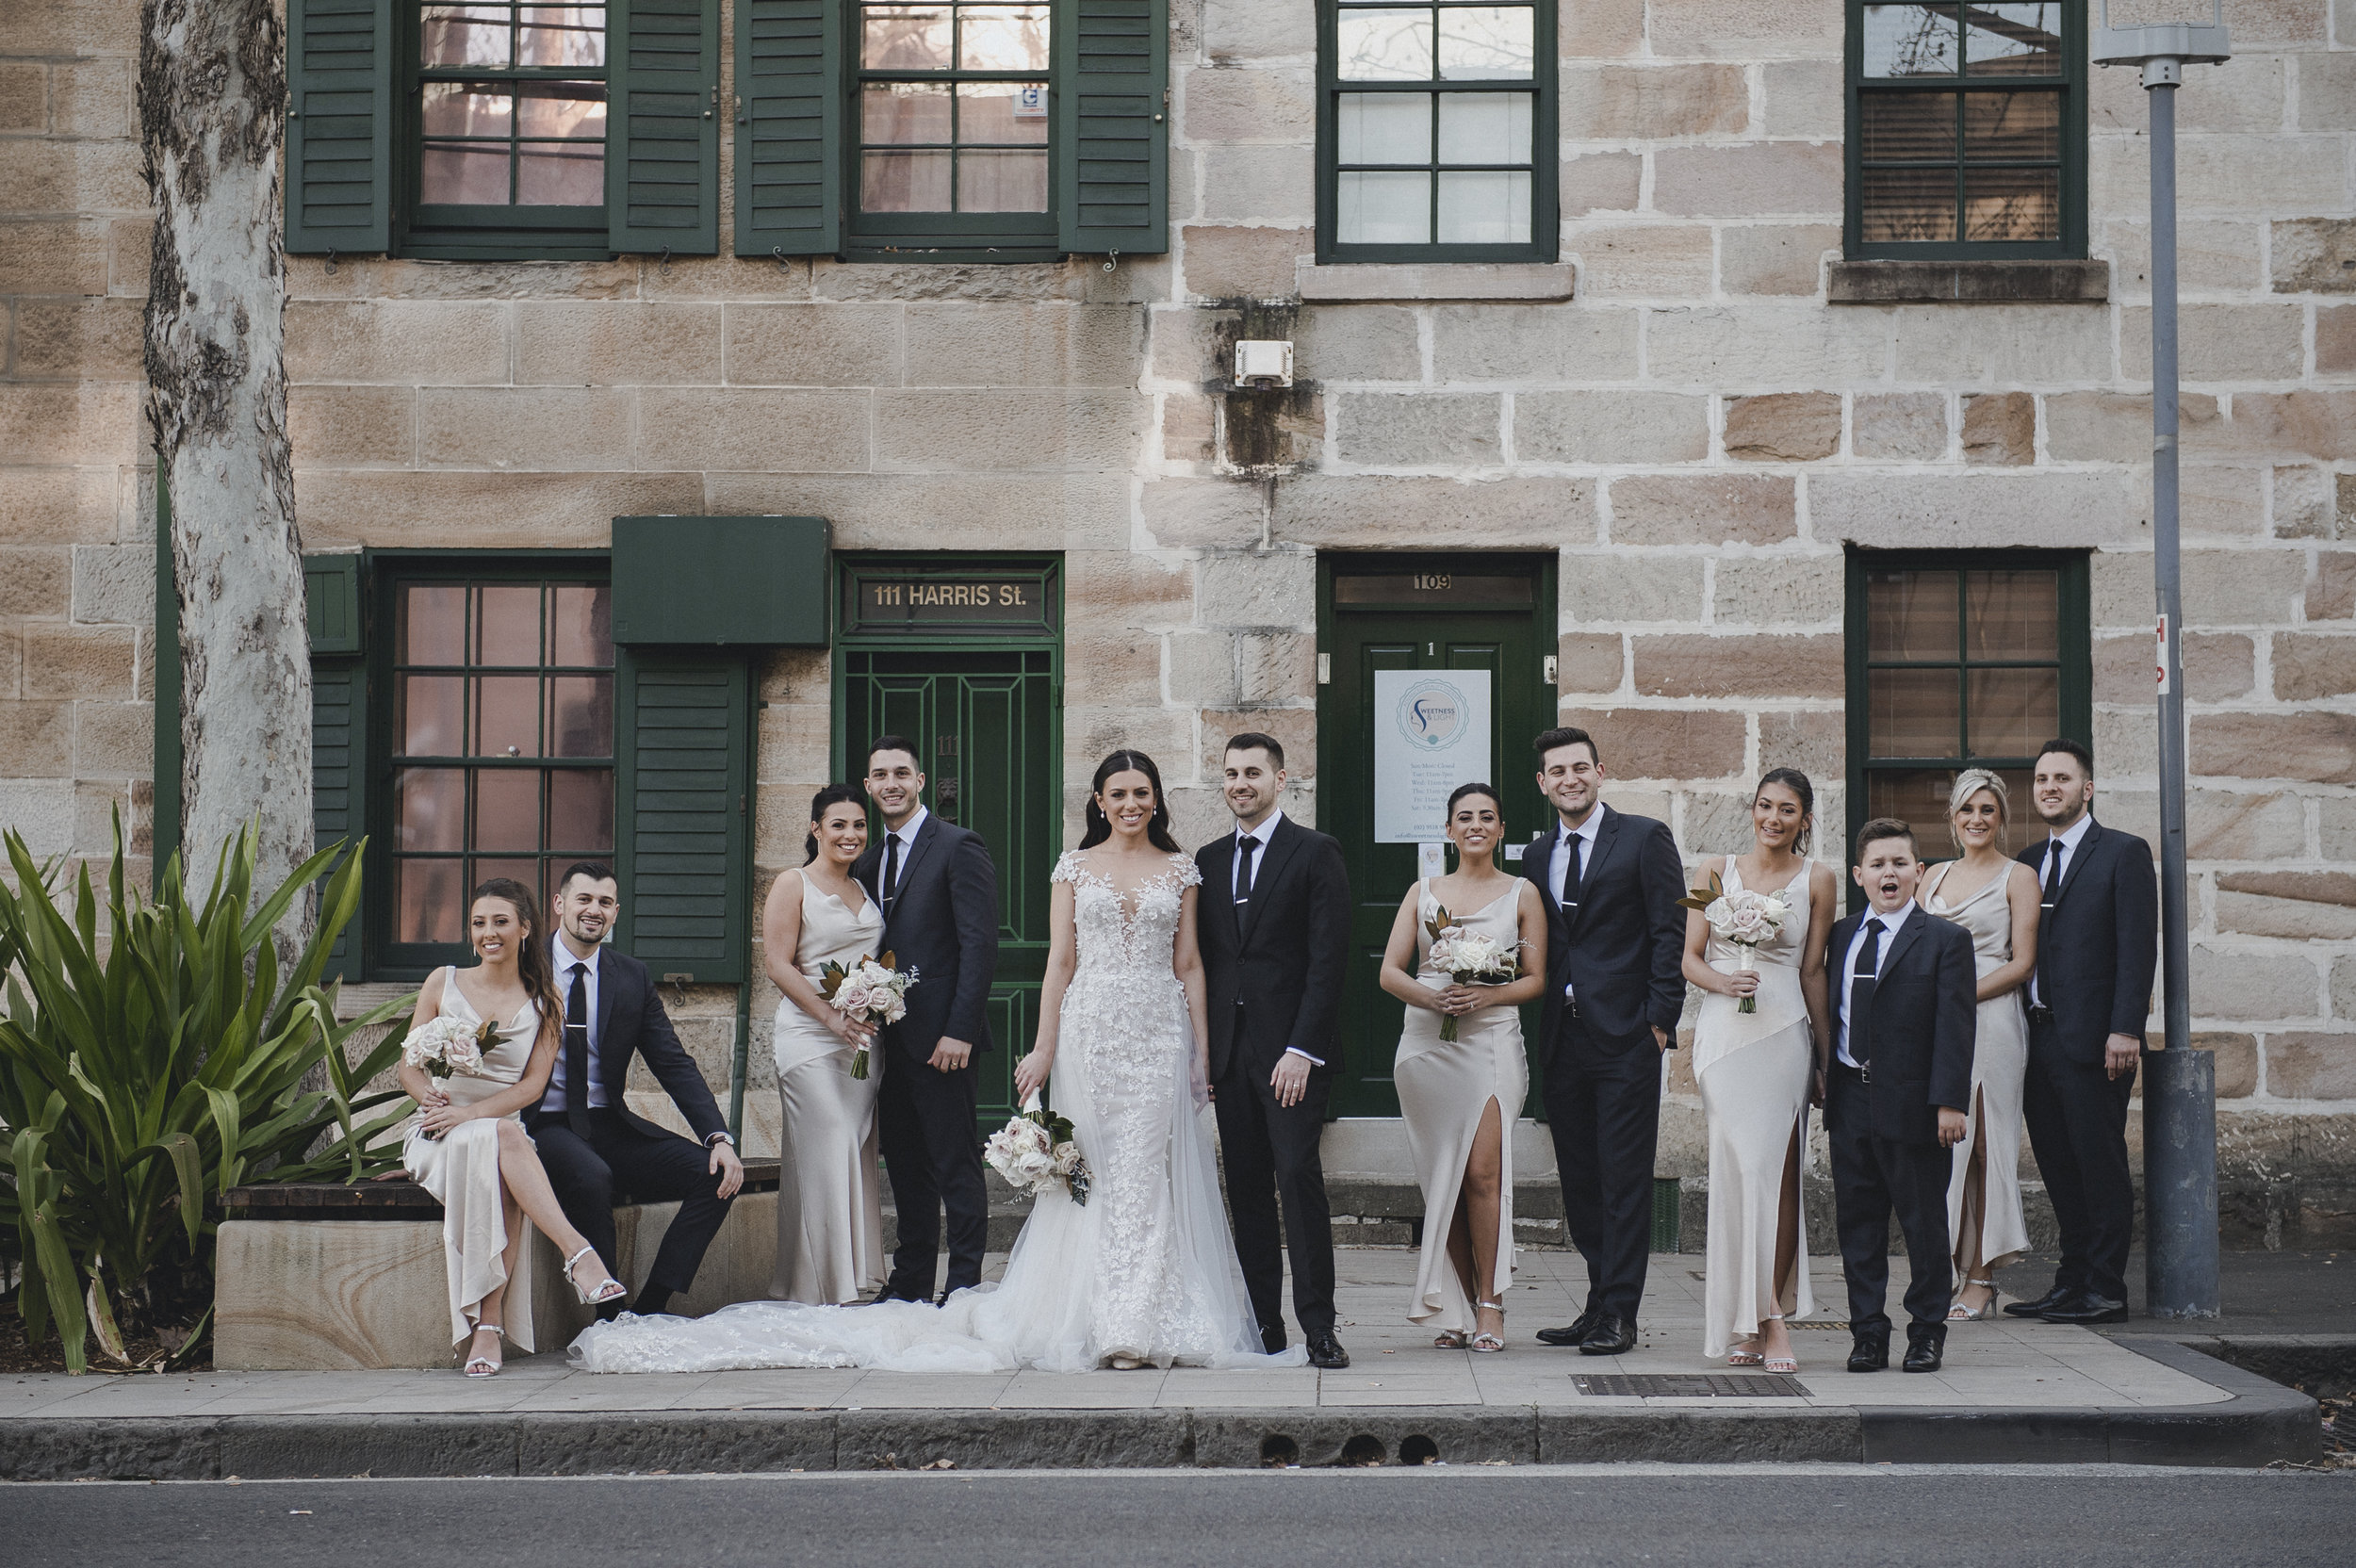 ROSANN DANIEL WEDDING PREVIEW LORES (159 of 227).JPG